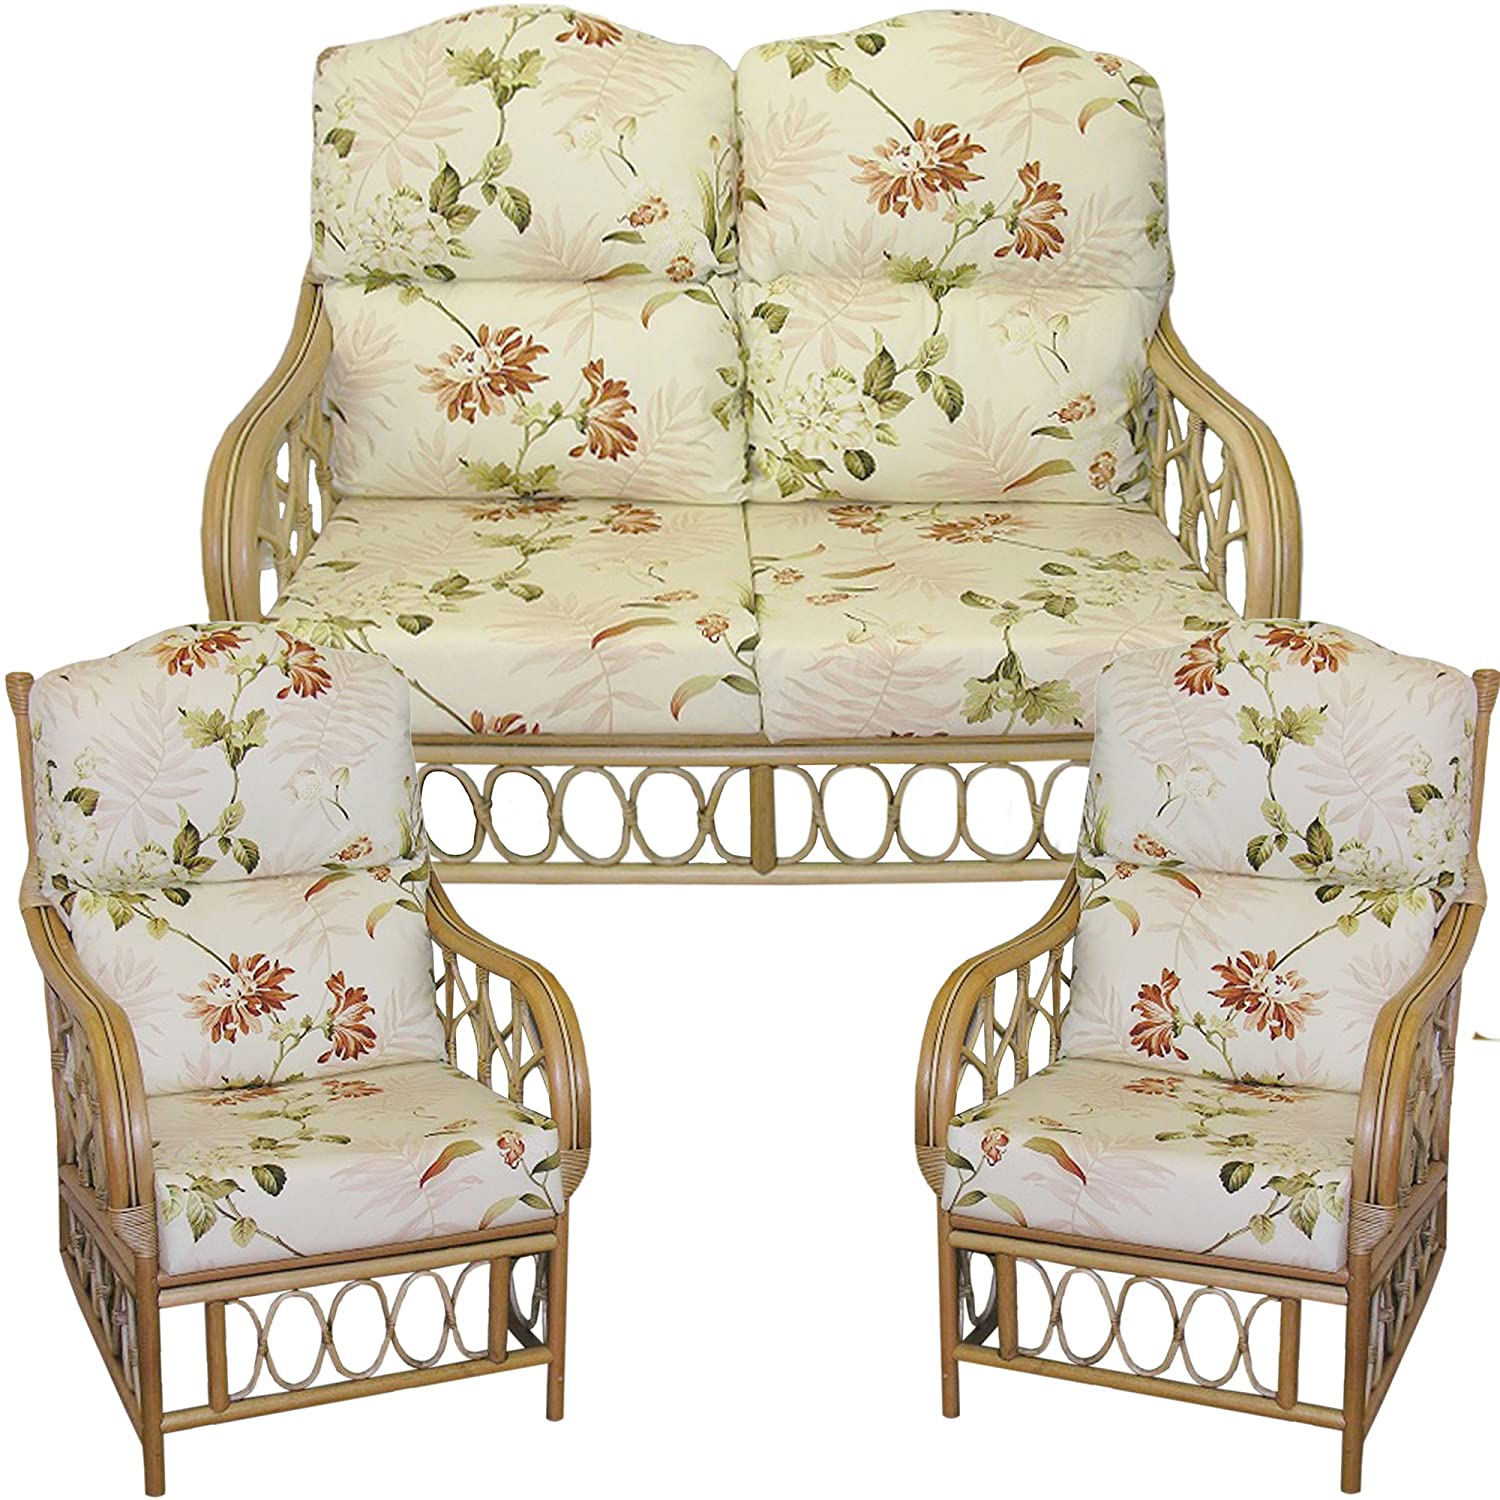 Cane chairs with cushions - Gilda Replacement Hump Top Suite Cane Furniture Complete Cushions Only Conservatory Wicker Rattan